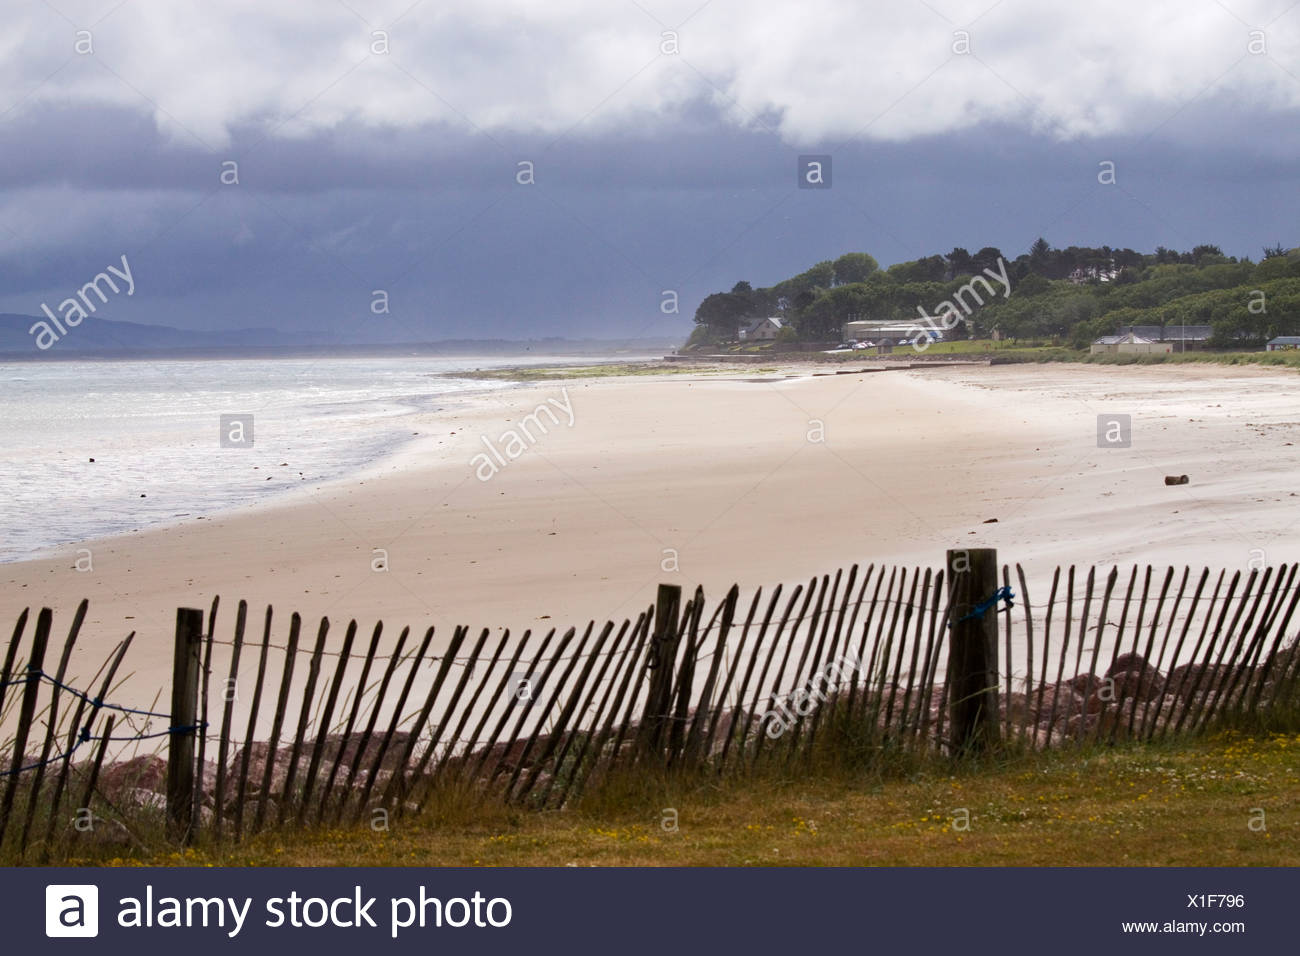 L'Écosse, Nairn, plage et coastine avec fence Photo Stock